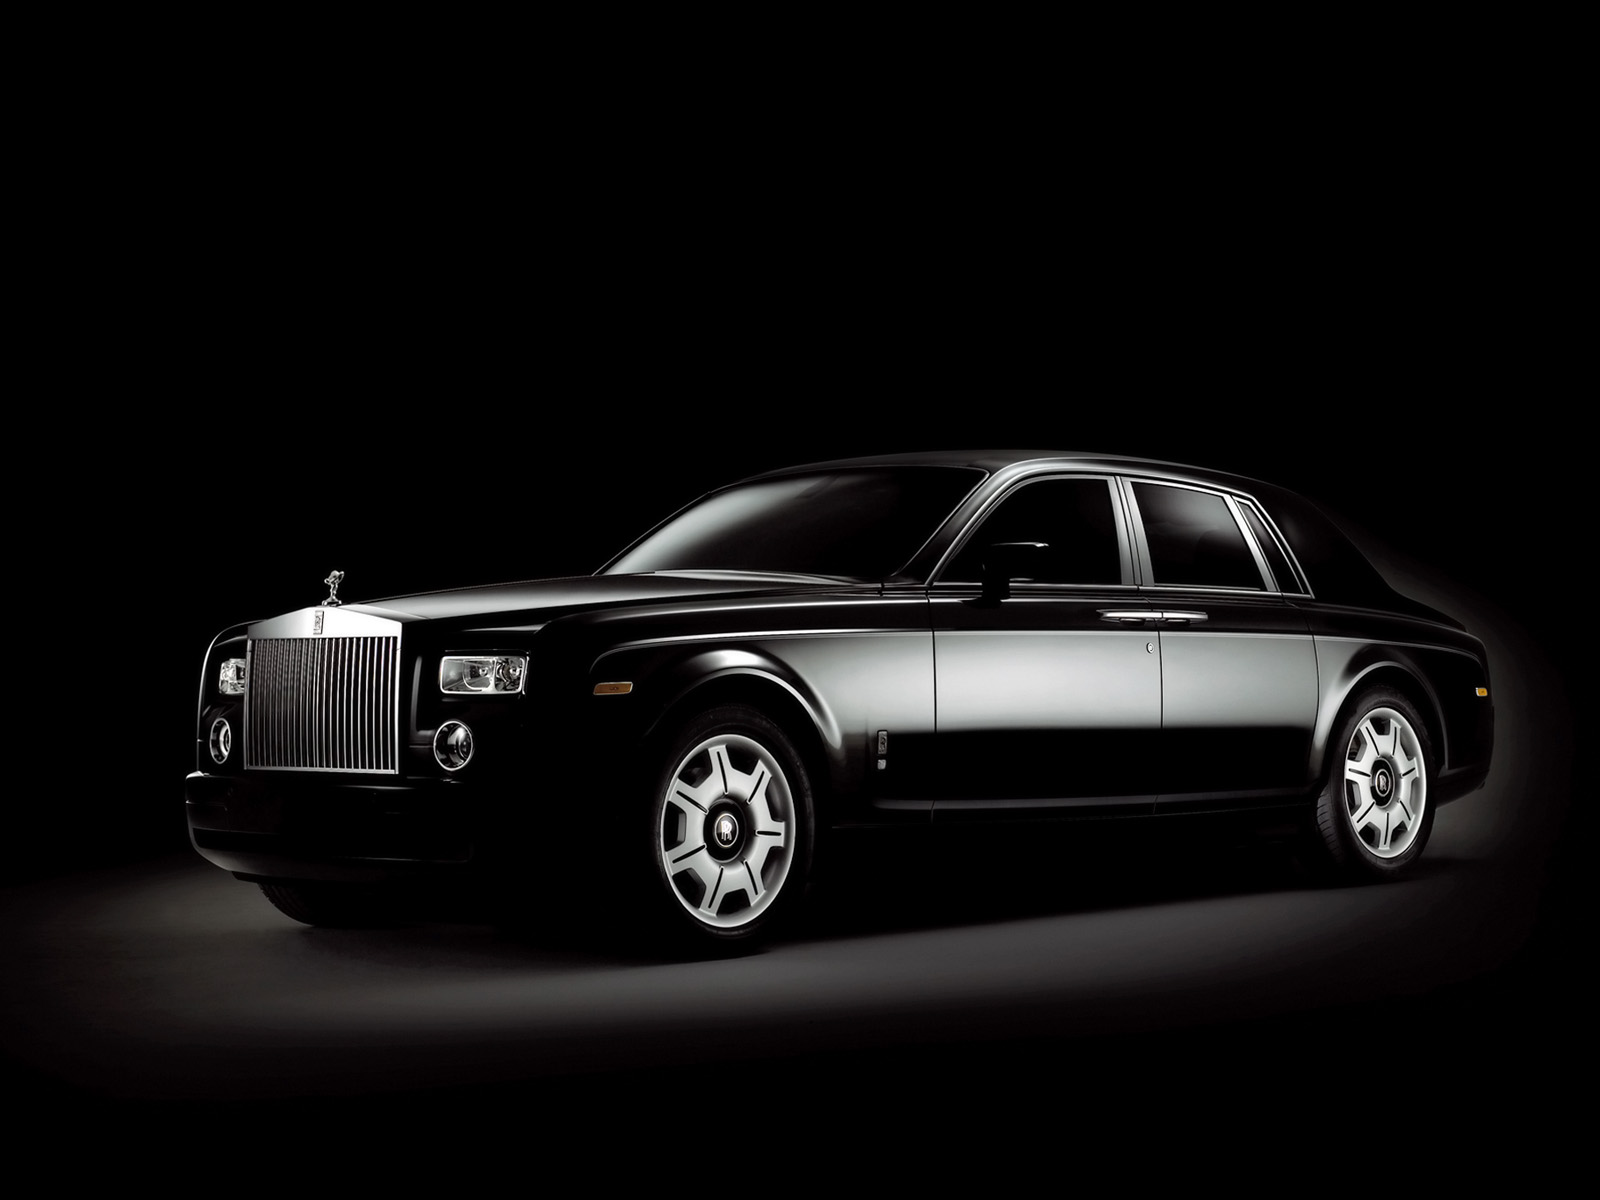 Rolls-Royce Phantom: 6 фото